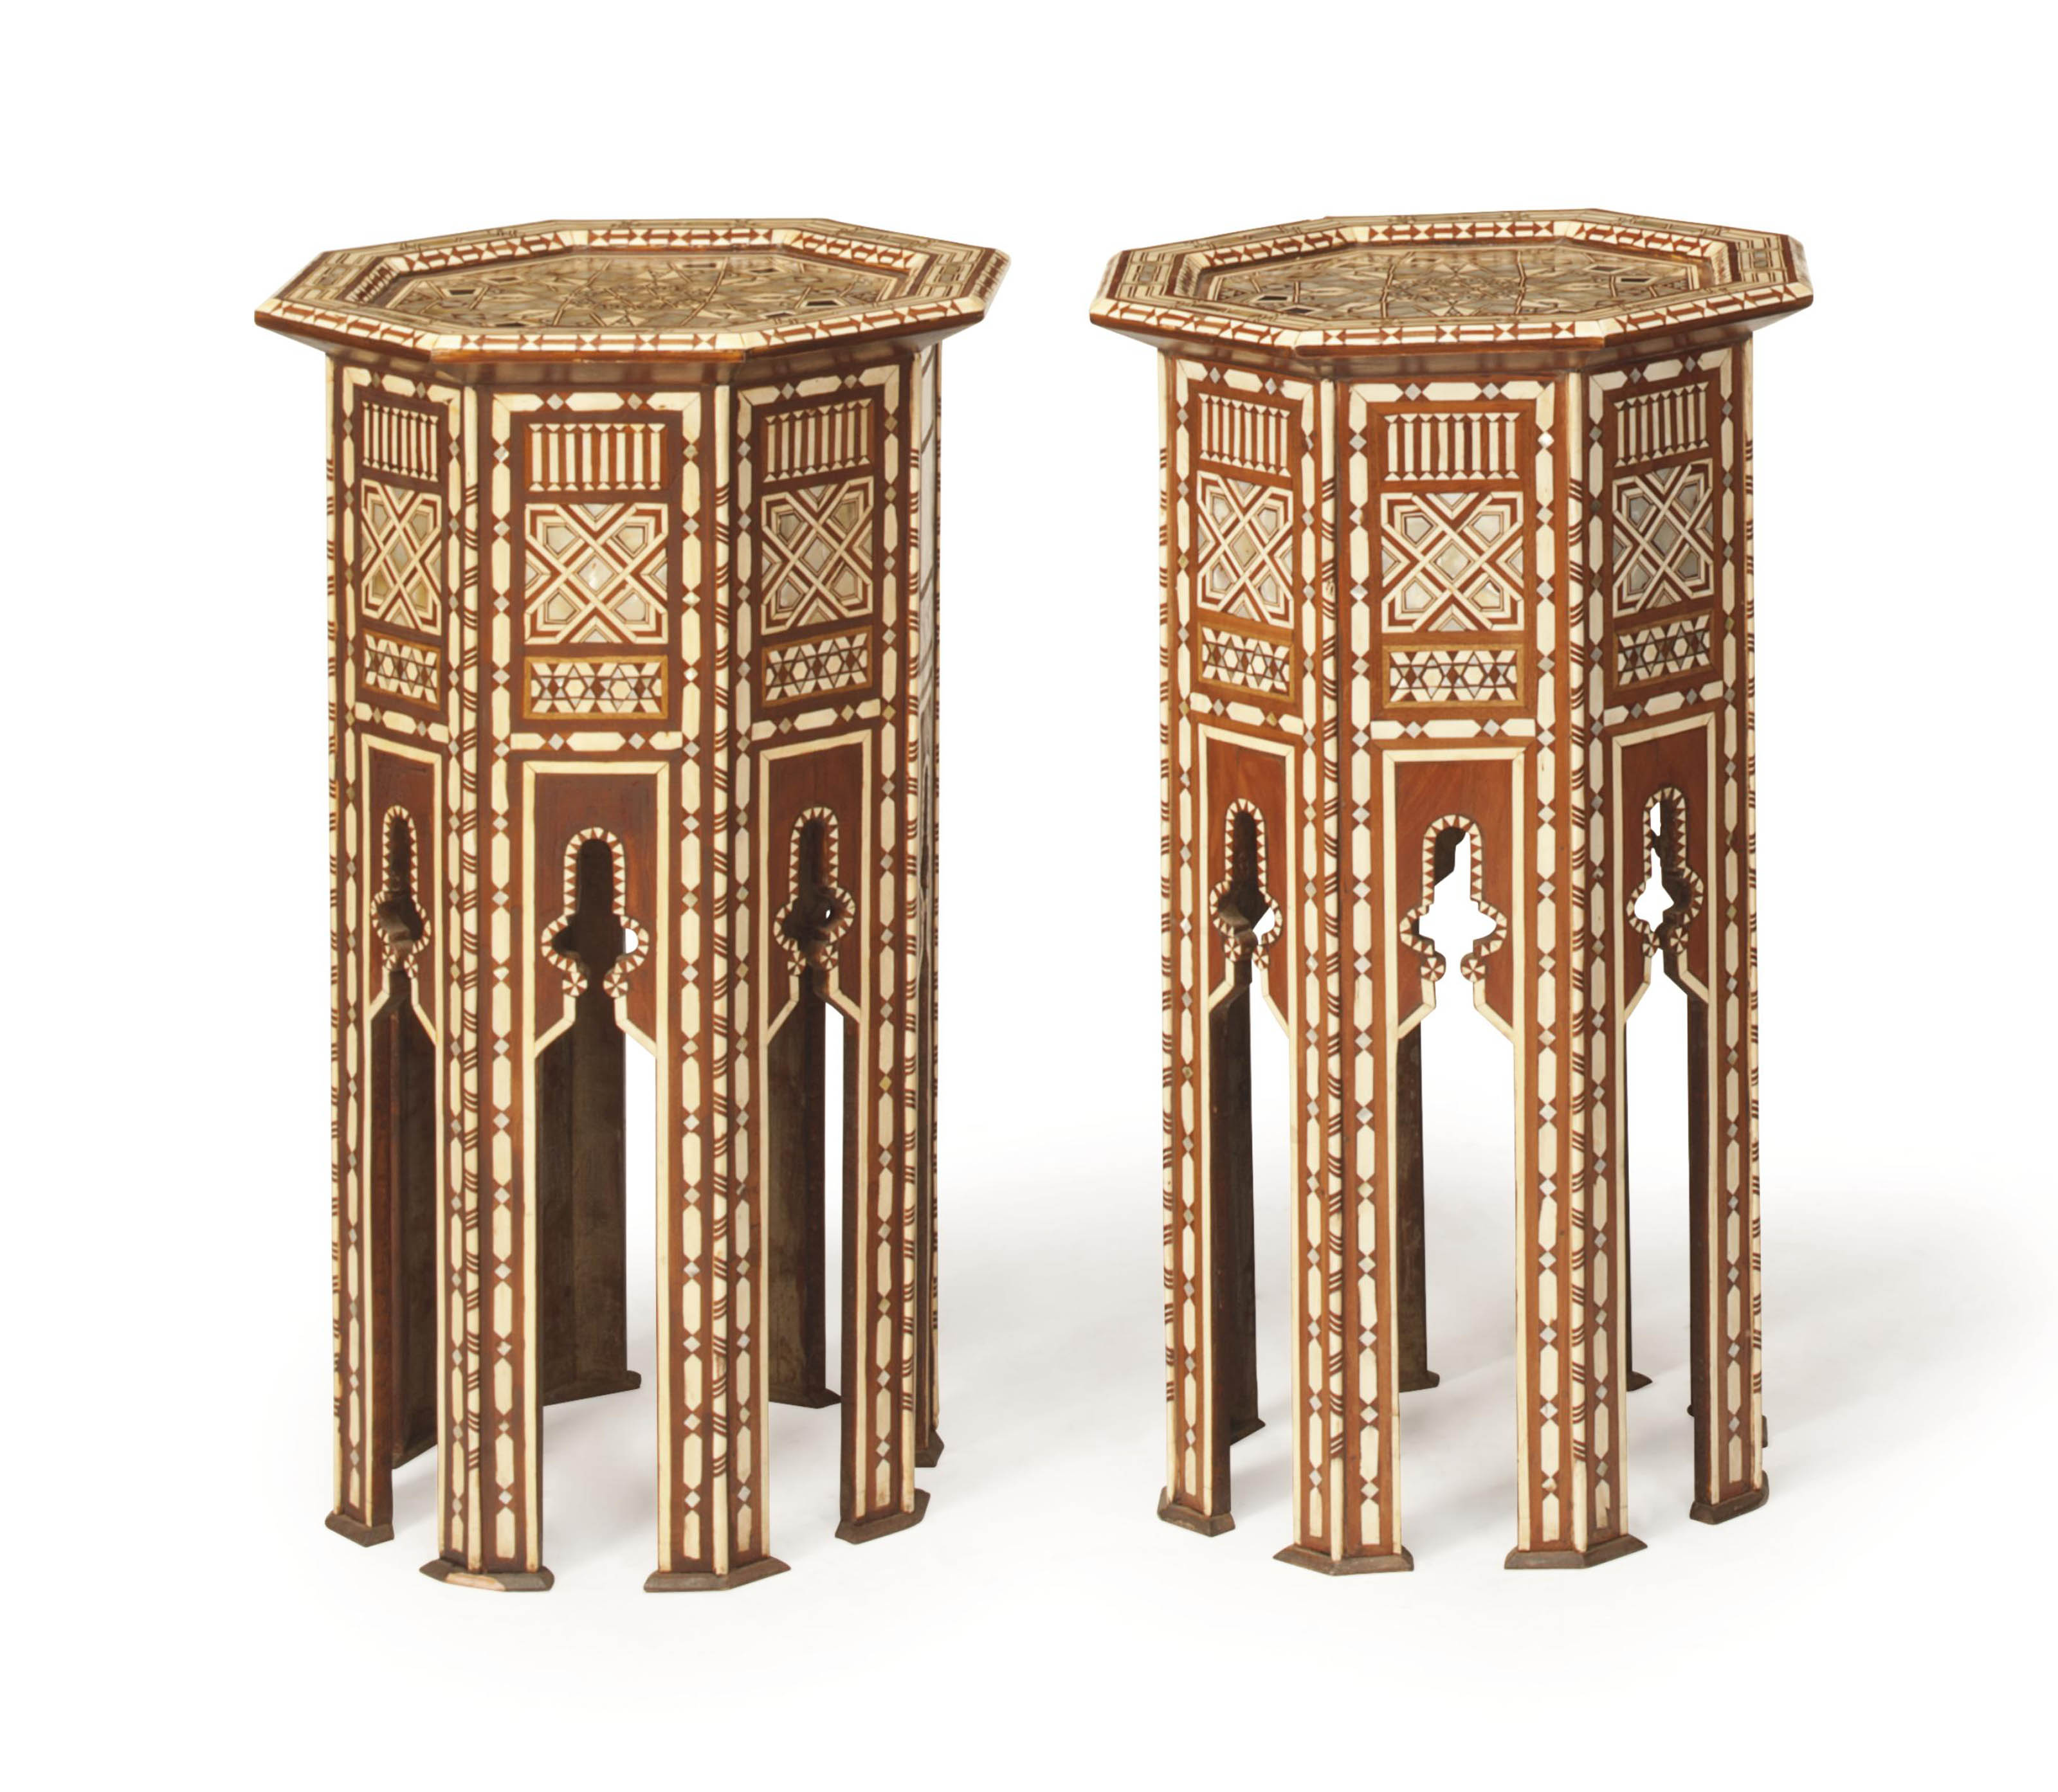 A PAIR OF SYRIAN BONE AND MOTHER-OF-PEARL-INLAID OCTAGONAL